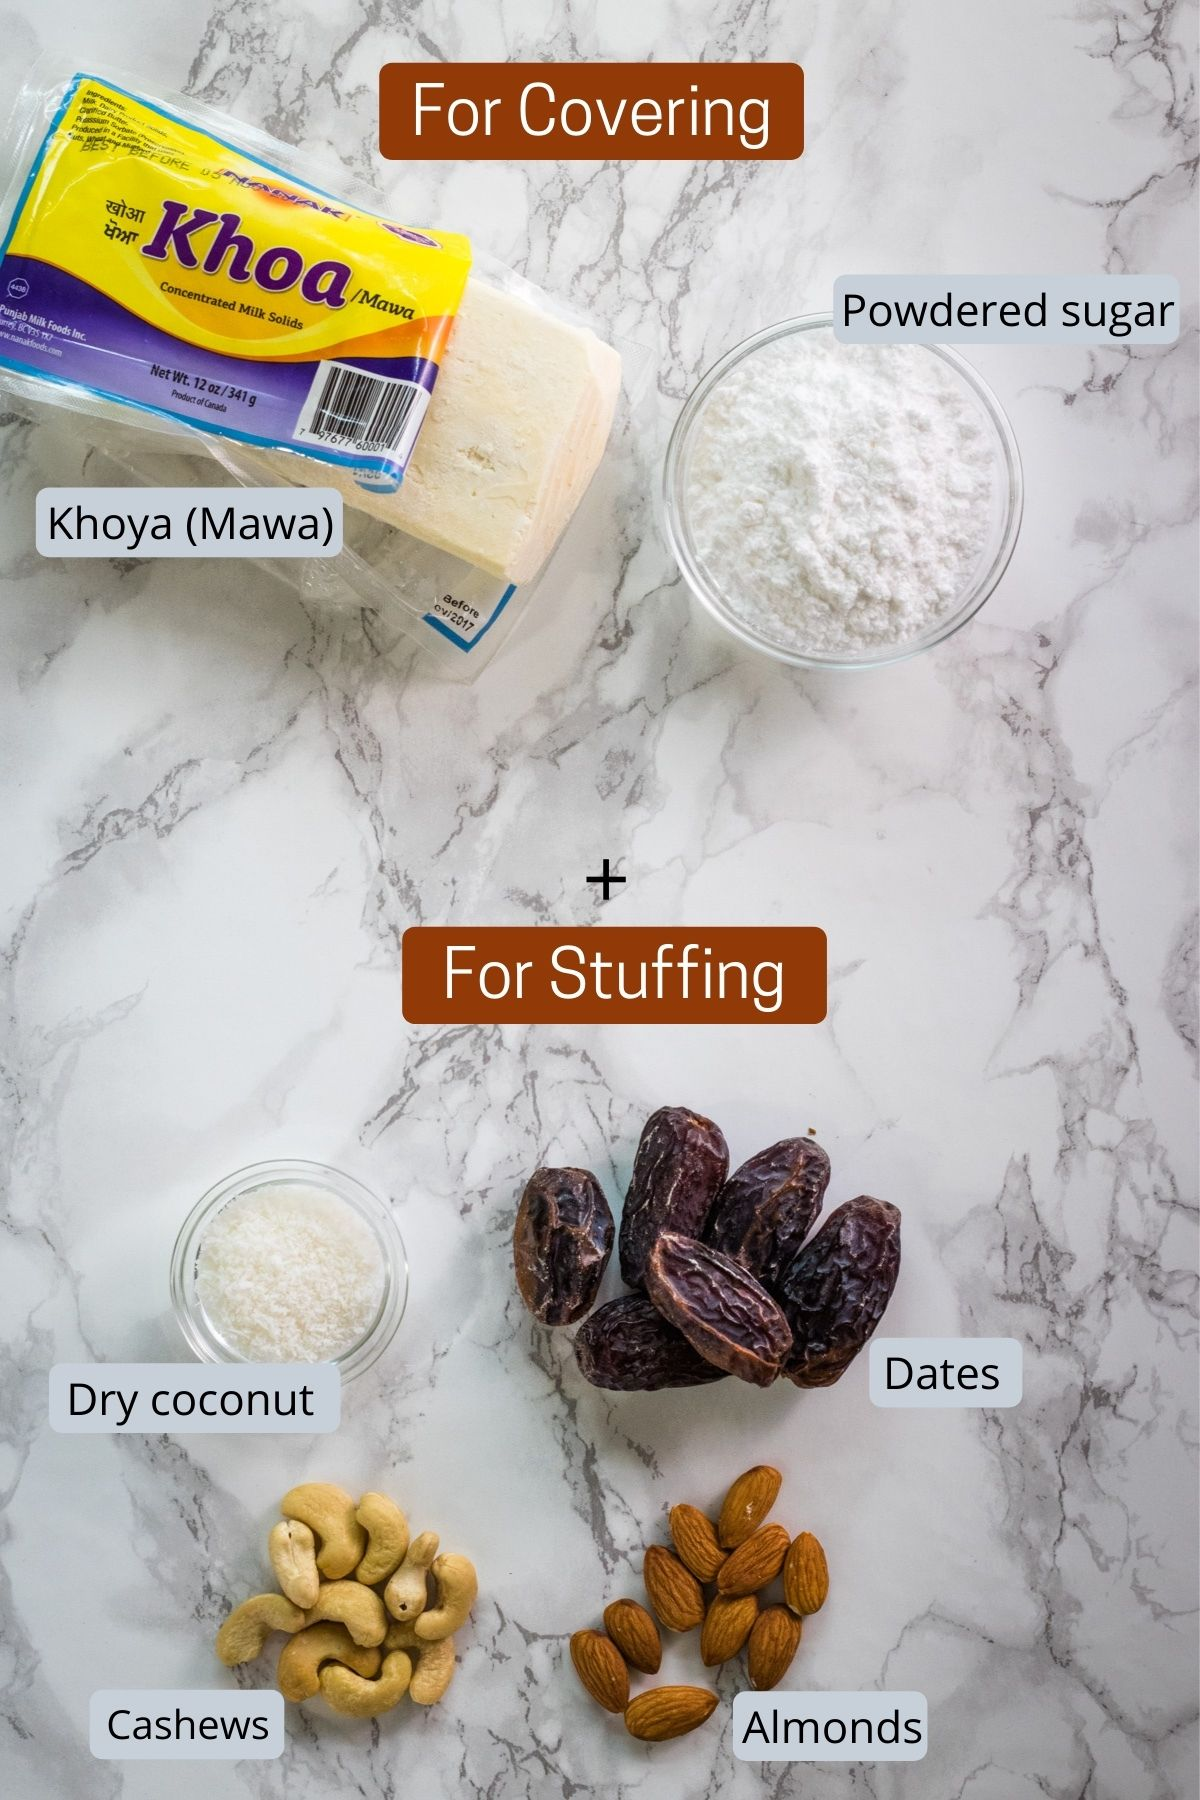 image of ingredients used in mawa modak. shows khoya, sugar, dates, nuts and coconut